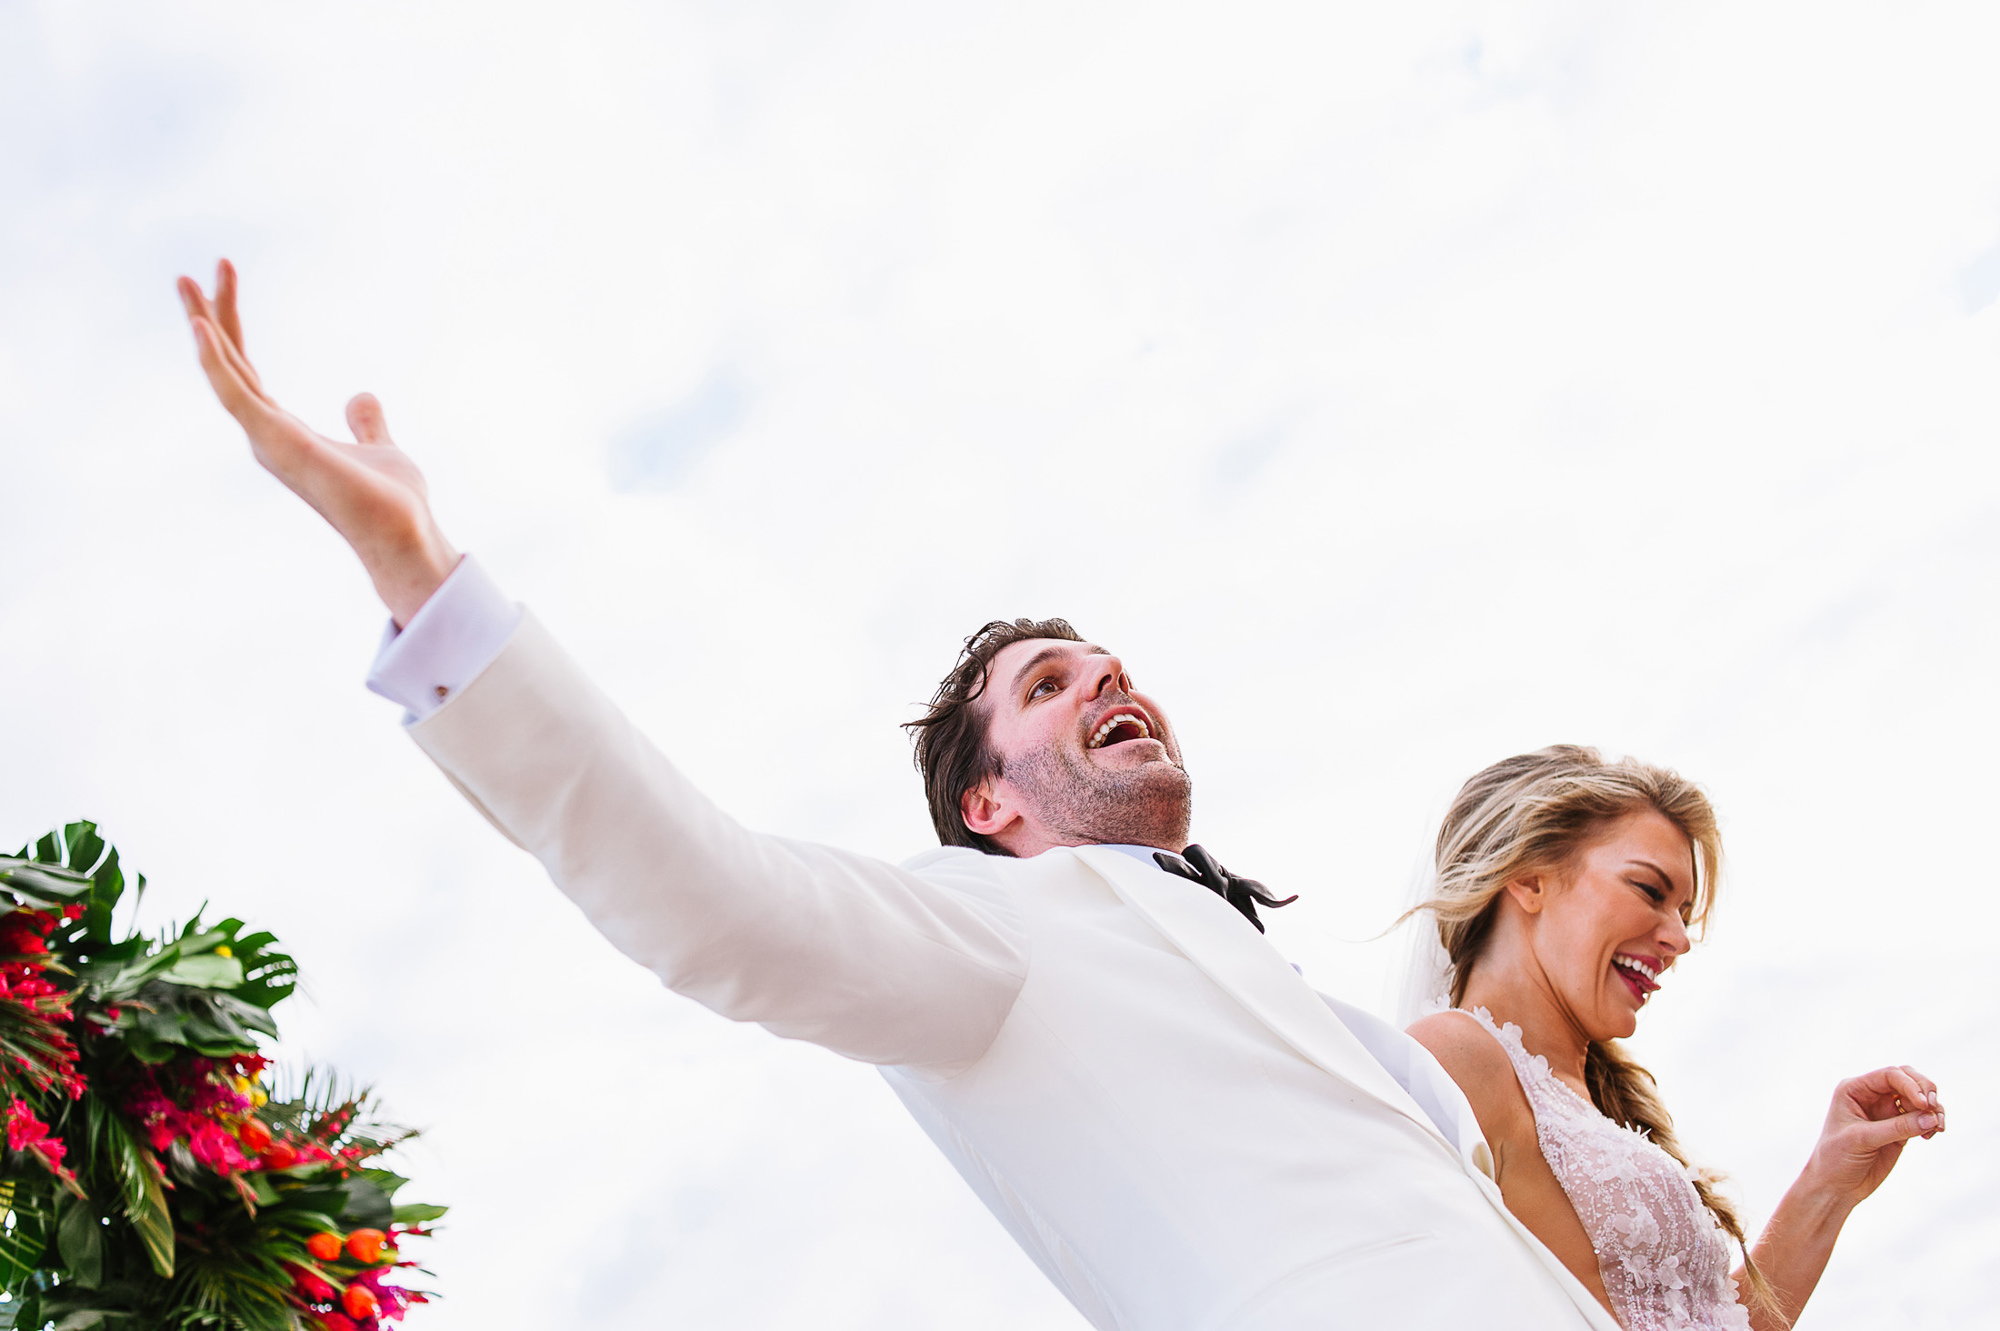 Groom in white tuxedo and bride cheer before walking down the aisle, by Citlalli Rico